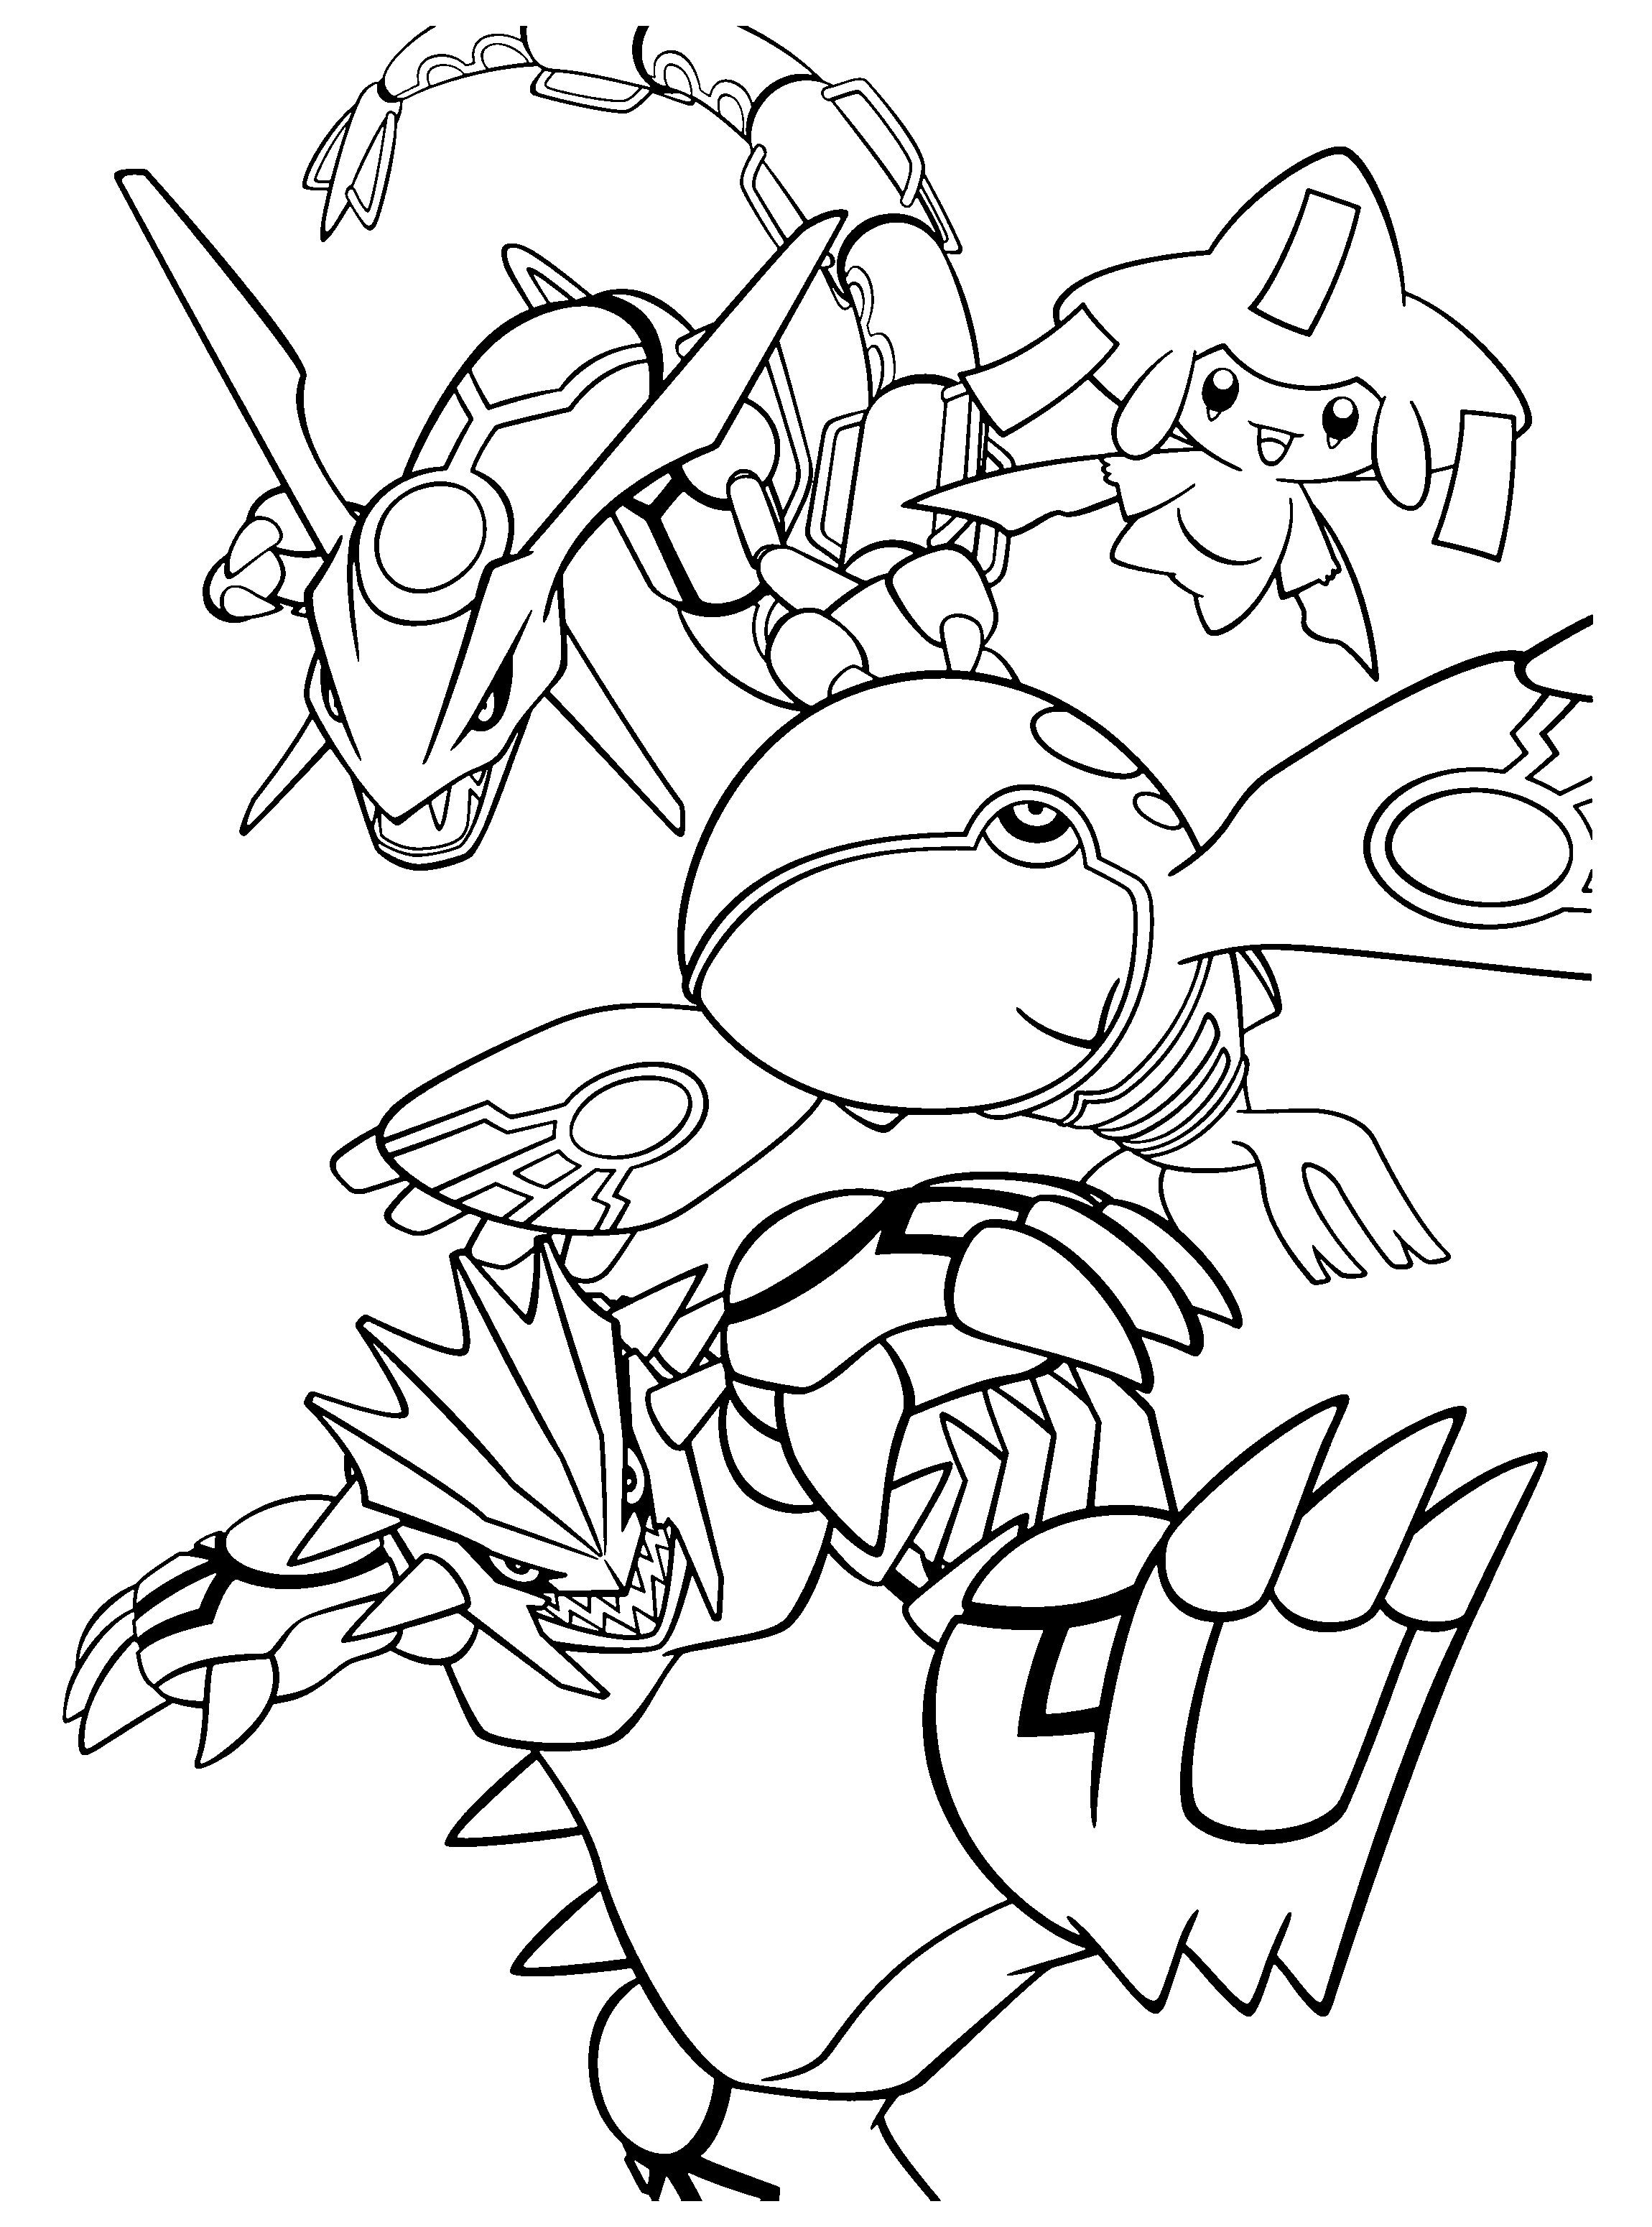 Pokemon Coloring Pages Groudon And Kyogre Through The Thousand Photographs On Net With Regards To Choices